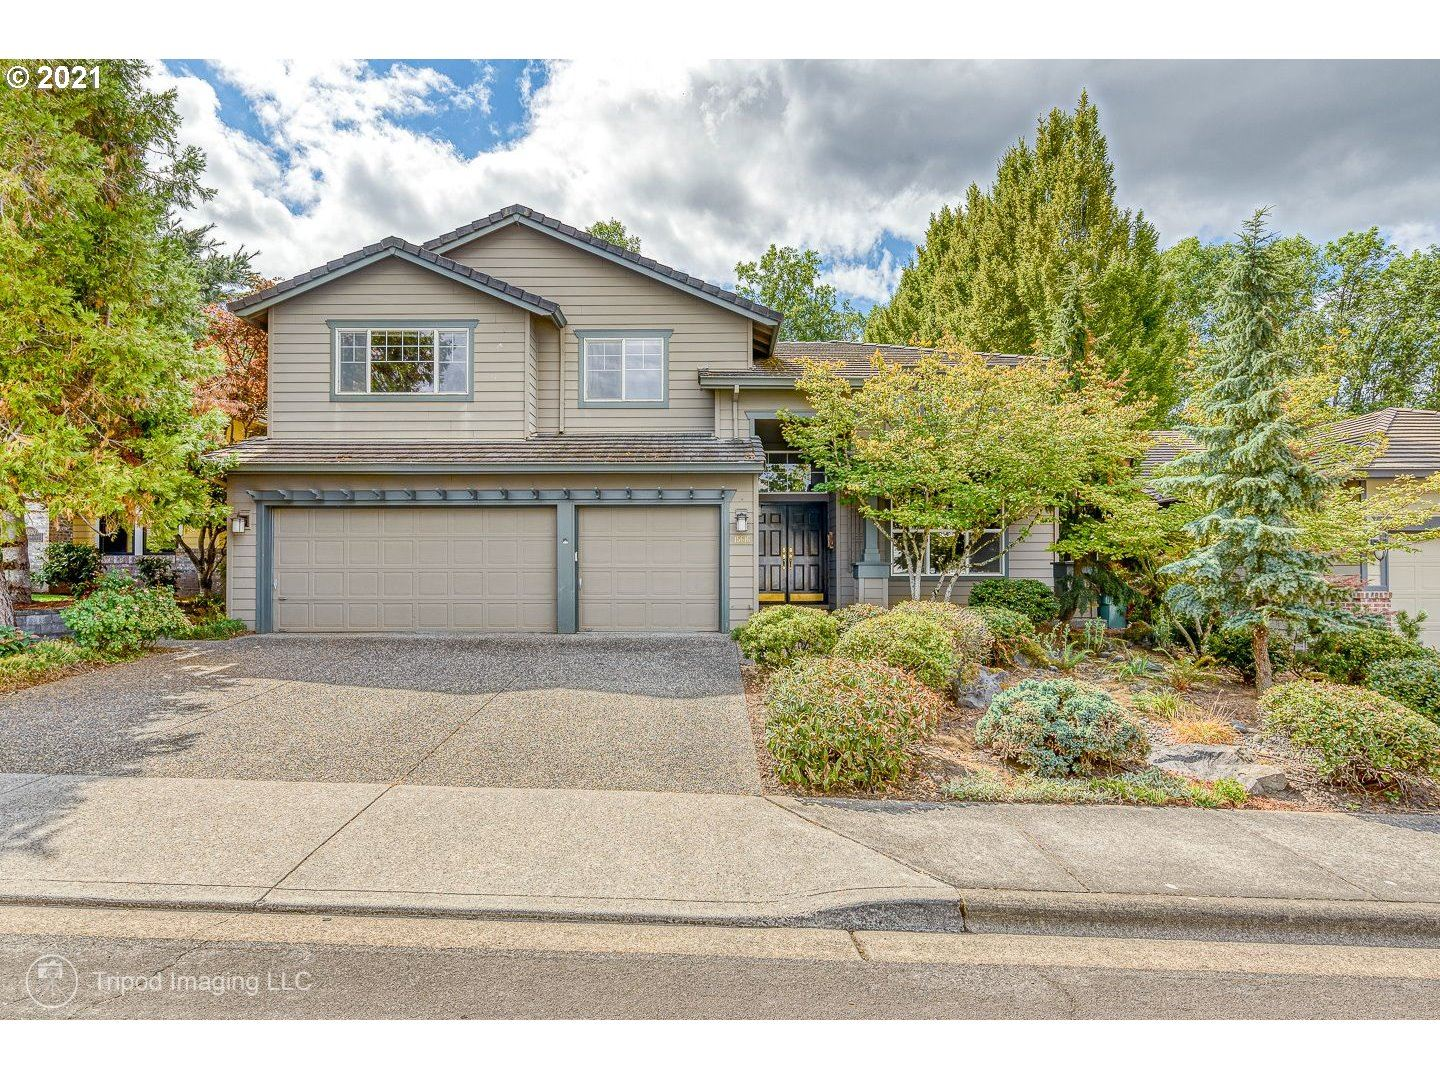 15616 NW ANDALUSIAN WAY, Portland, OR 97229 - MLS#: 21657830